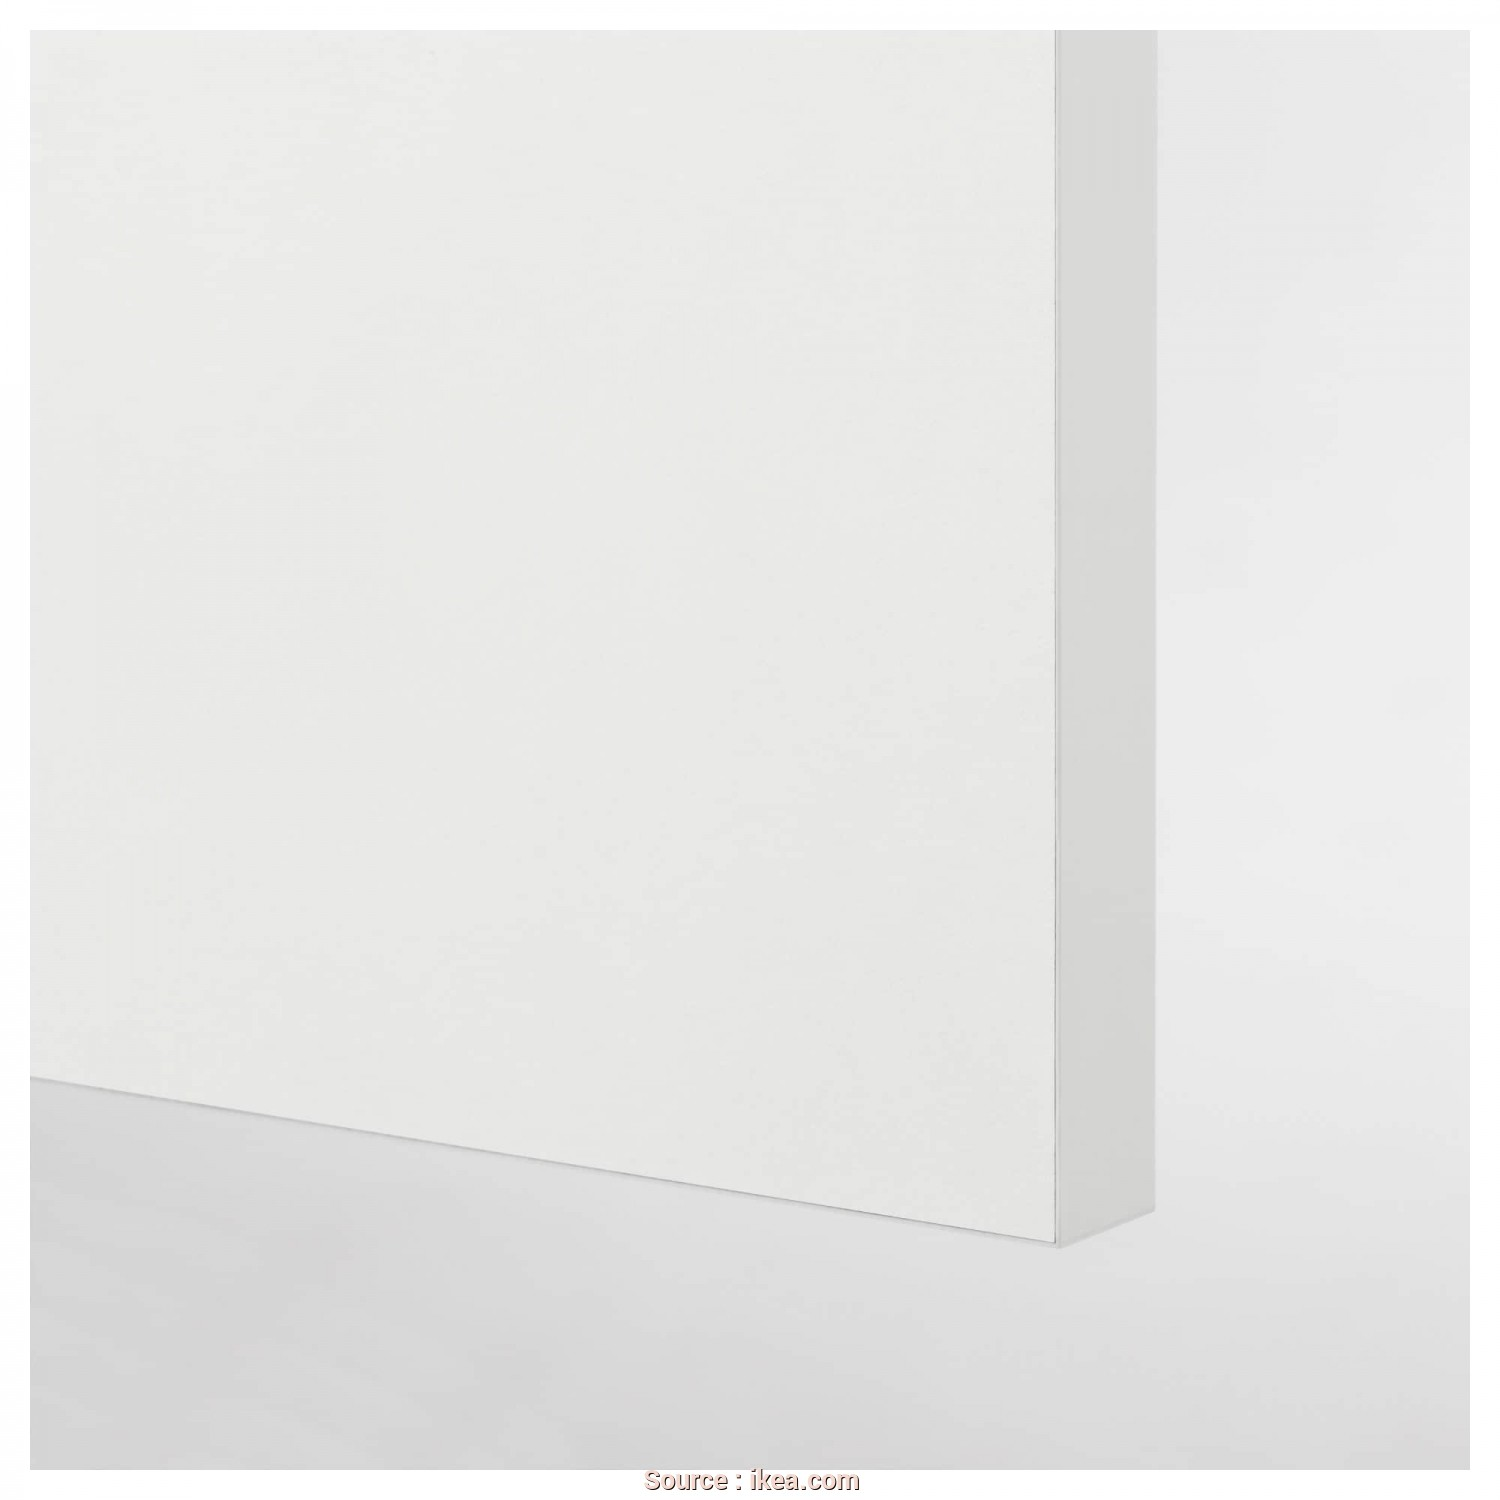 Copricuscini 60X60 Ikea, Grande IKEA KNOXHULT Wall Cabinet With Door, Door, Be Mounted To Open Left Or Right